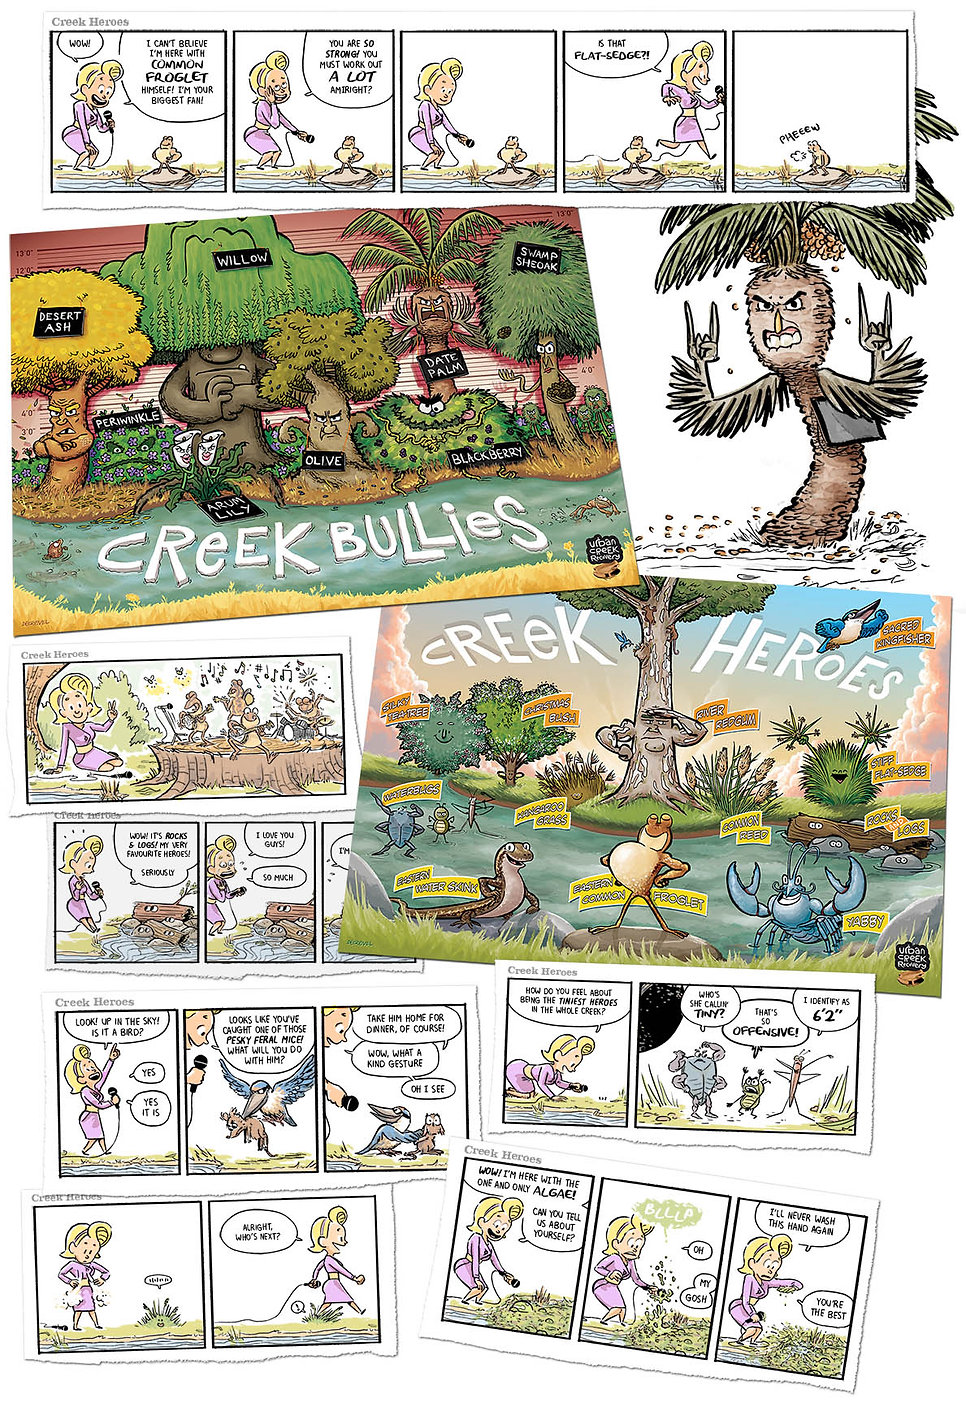 Creek Bullies & Heroes